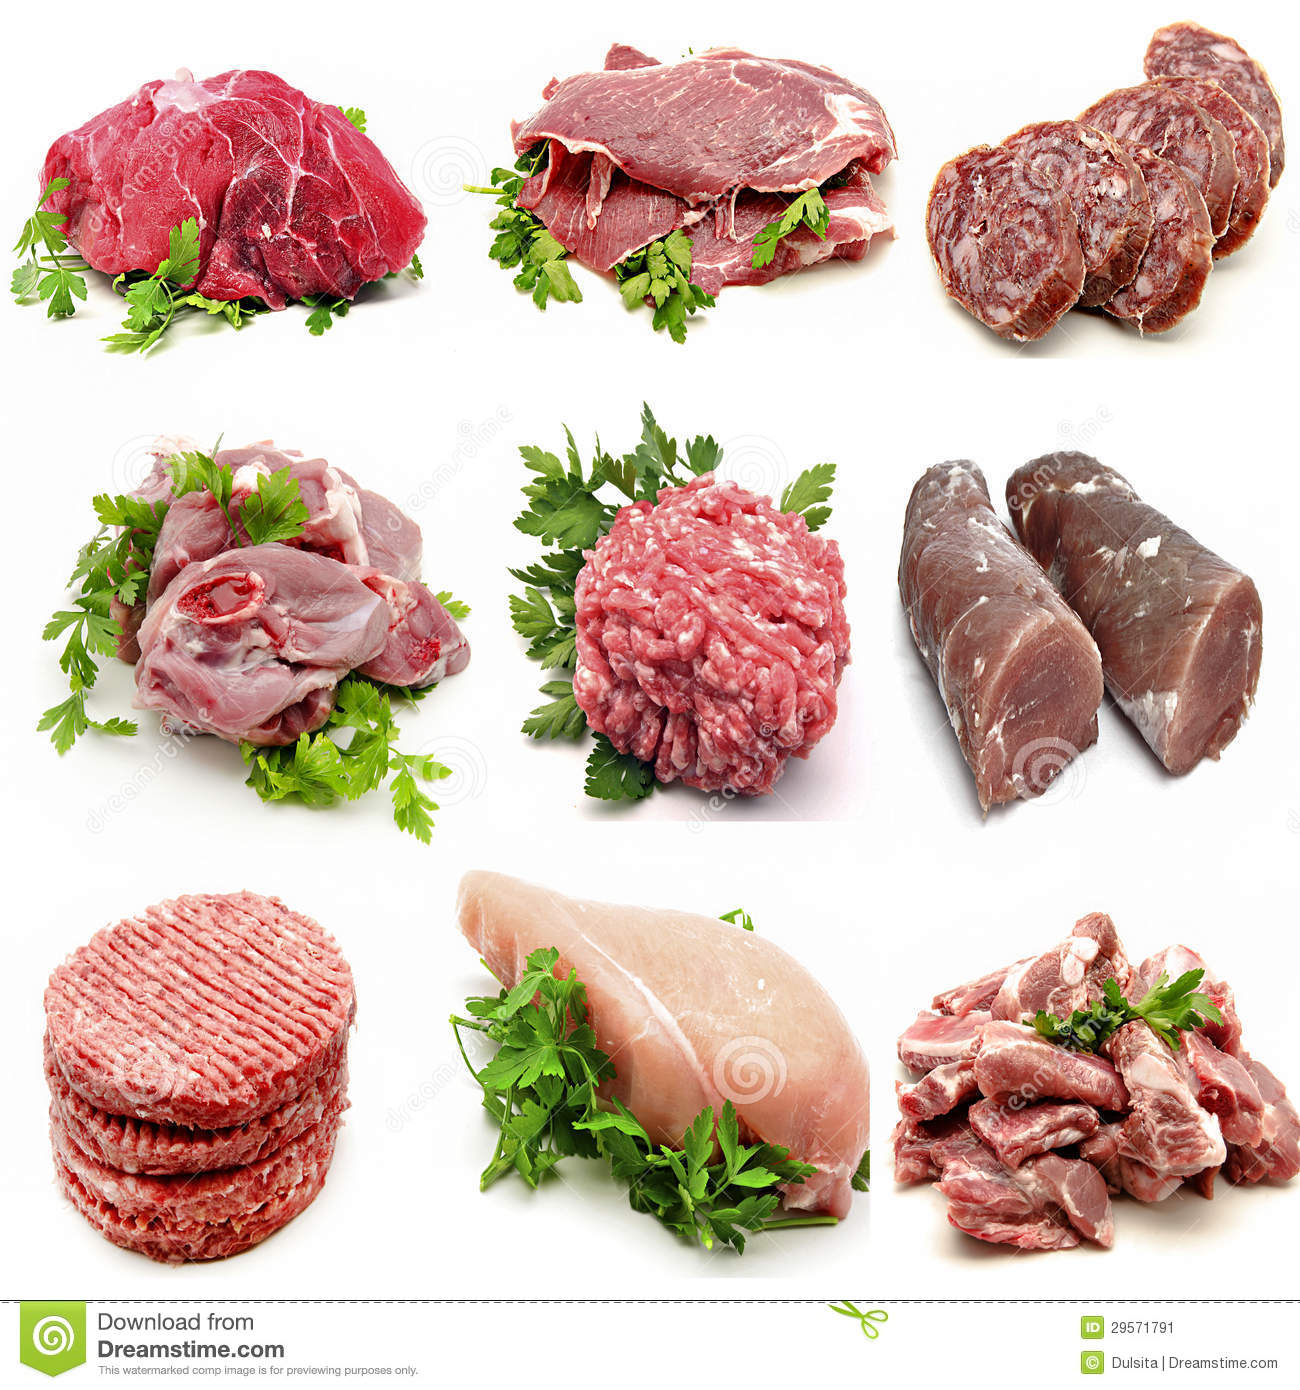 Mural various meats stock image image 29571791 for Mural nuestra carne